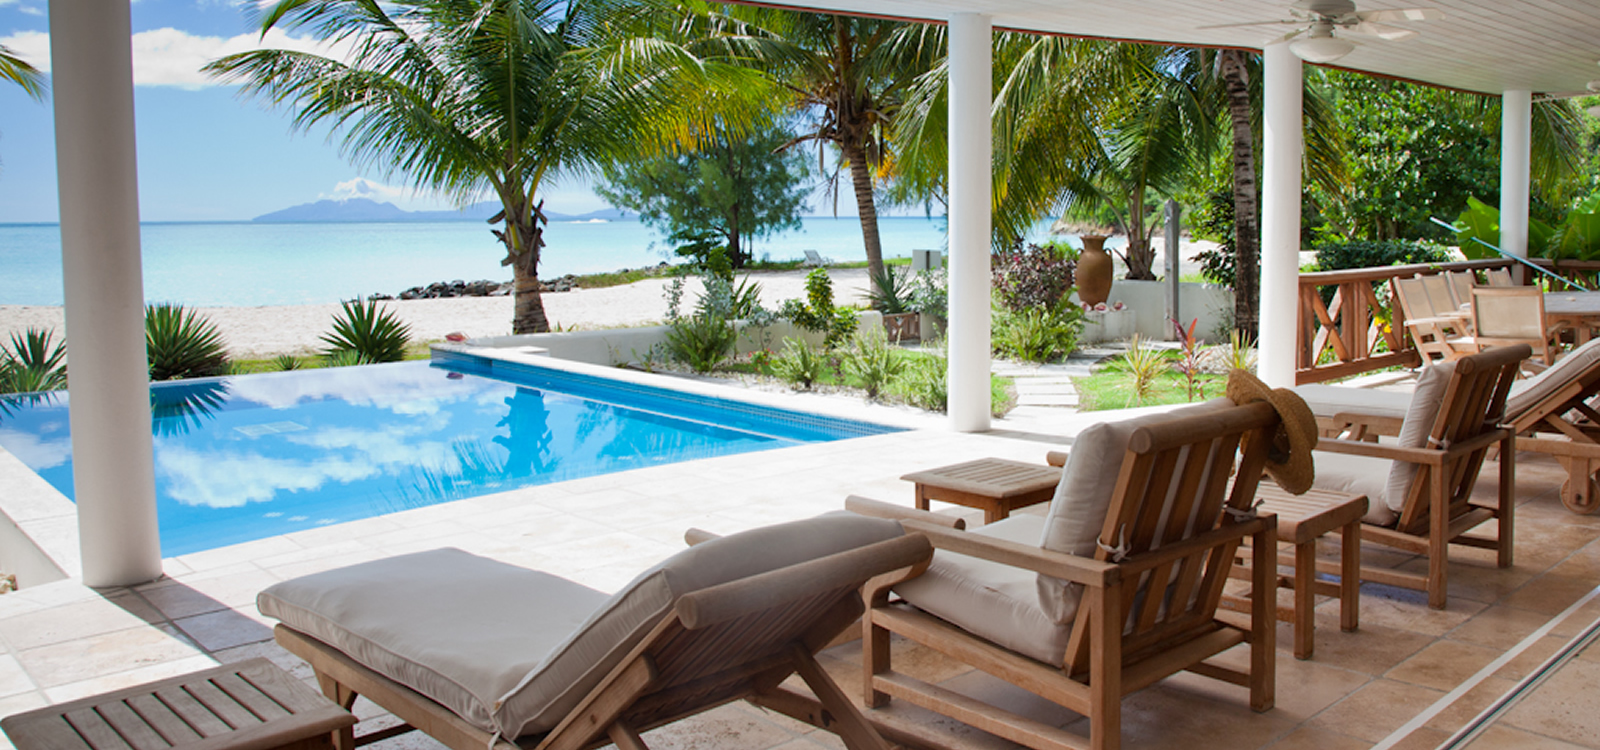 5 bedroom luxury beachfront property for sale jolly for Luxury beachfront property for sale